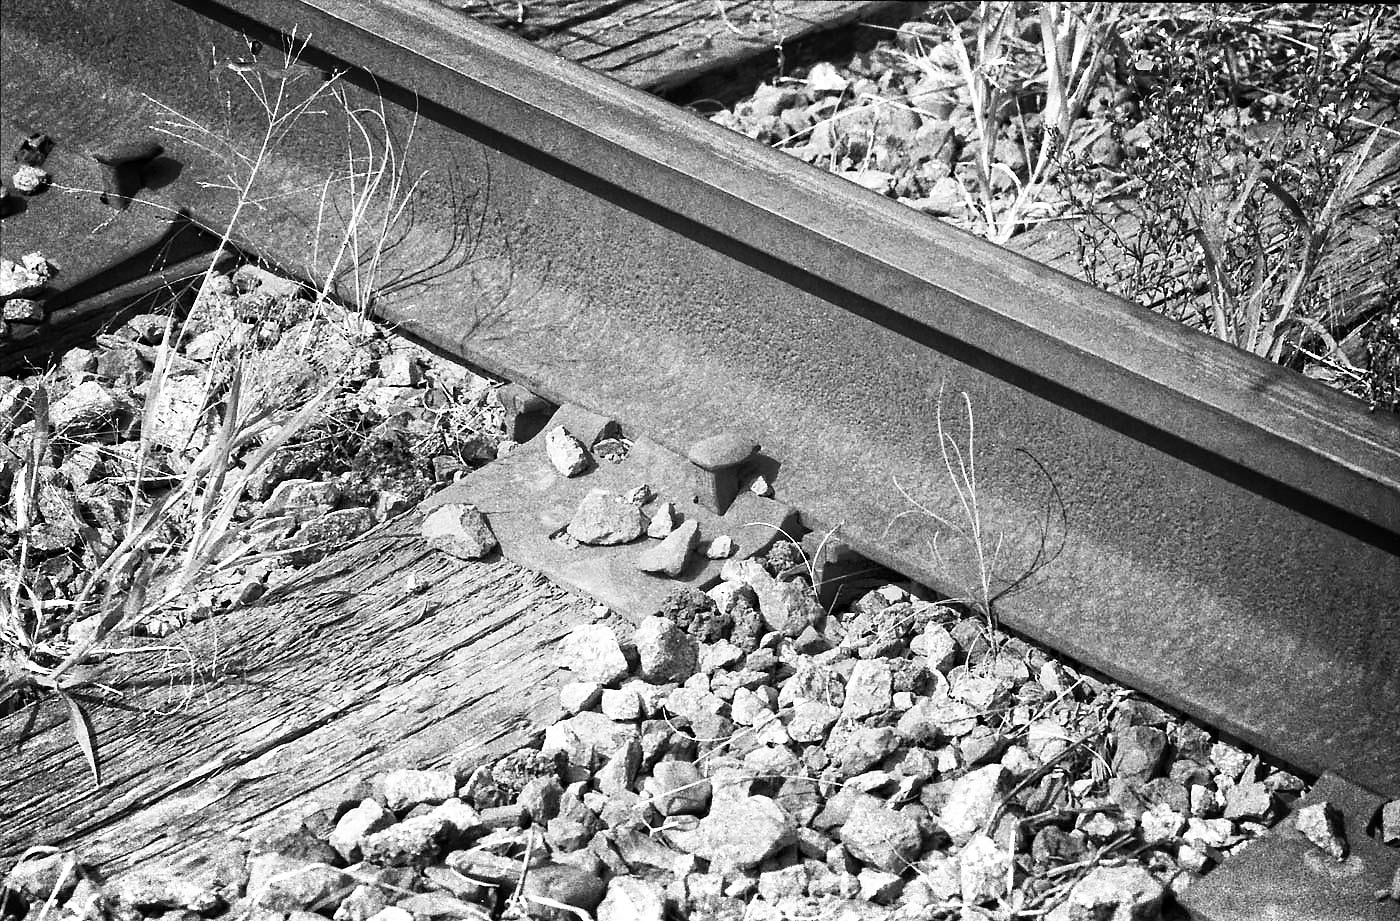 Black and White Image of Railway Tracks